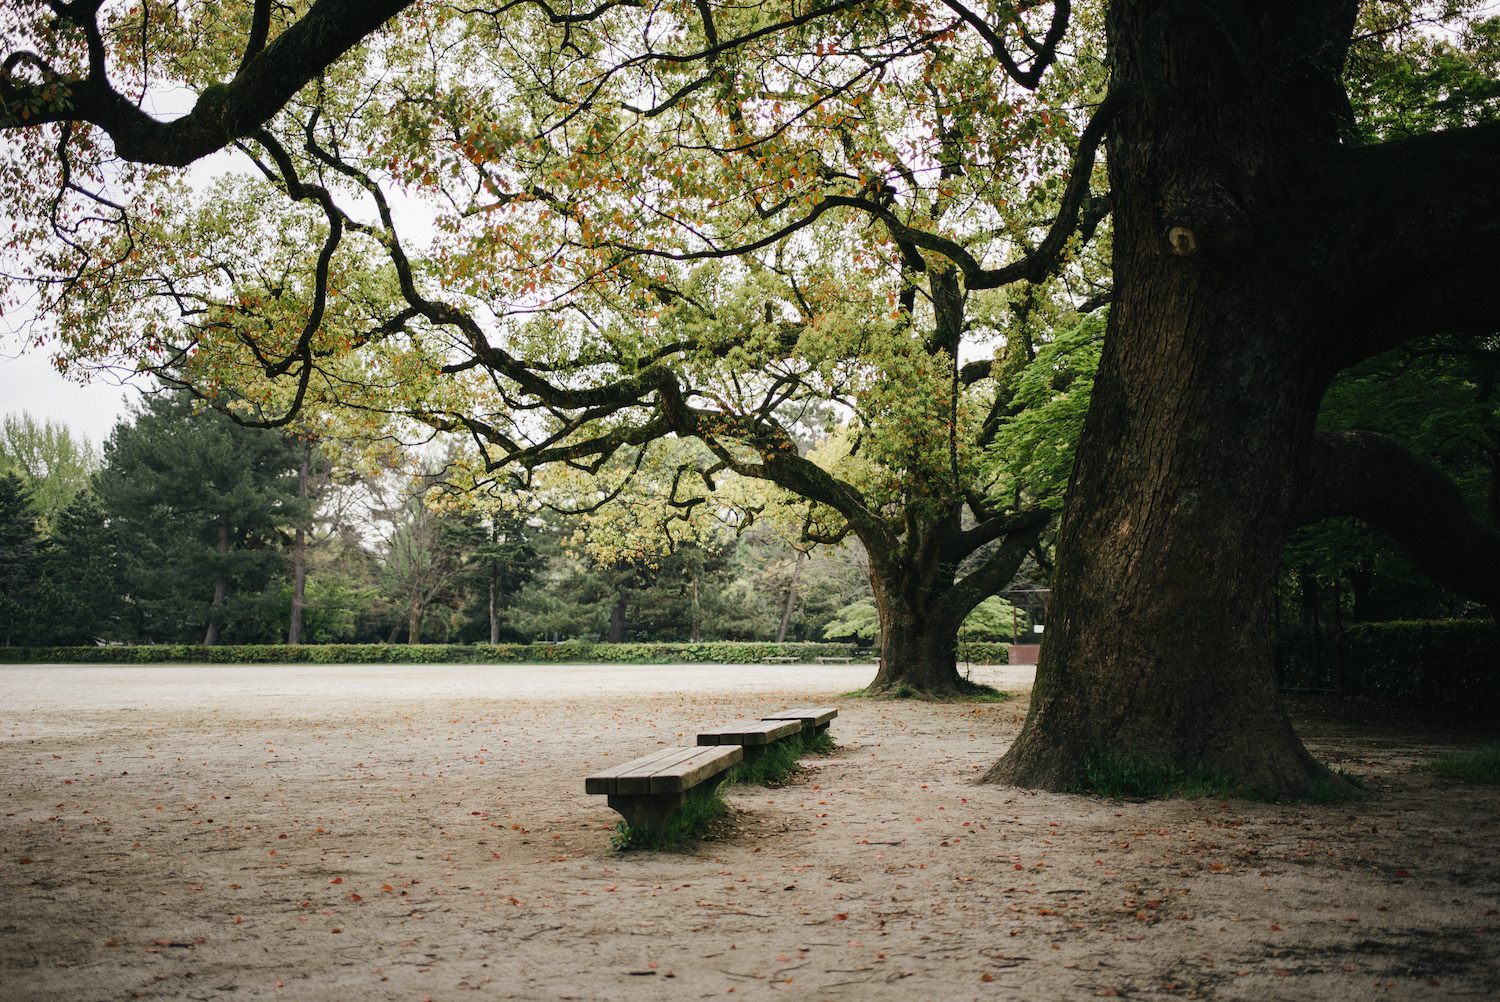 Serenity in a park.